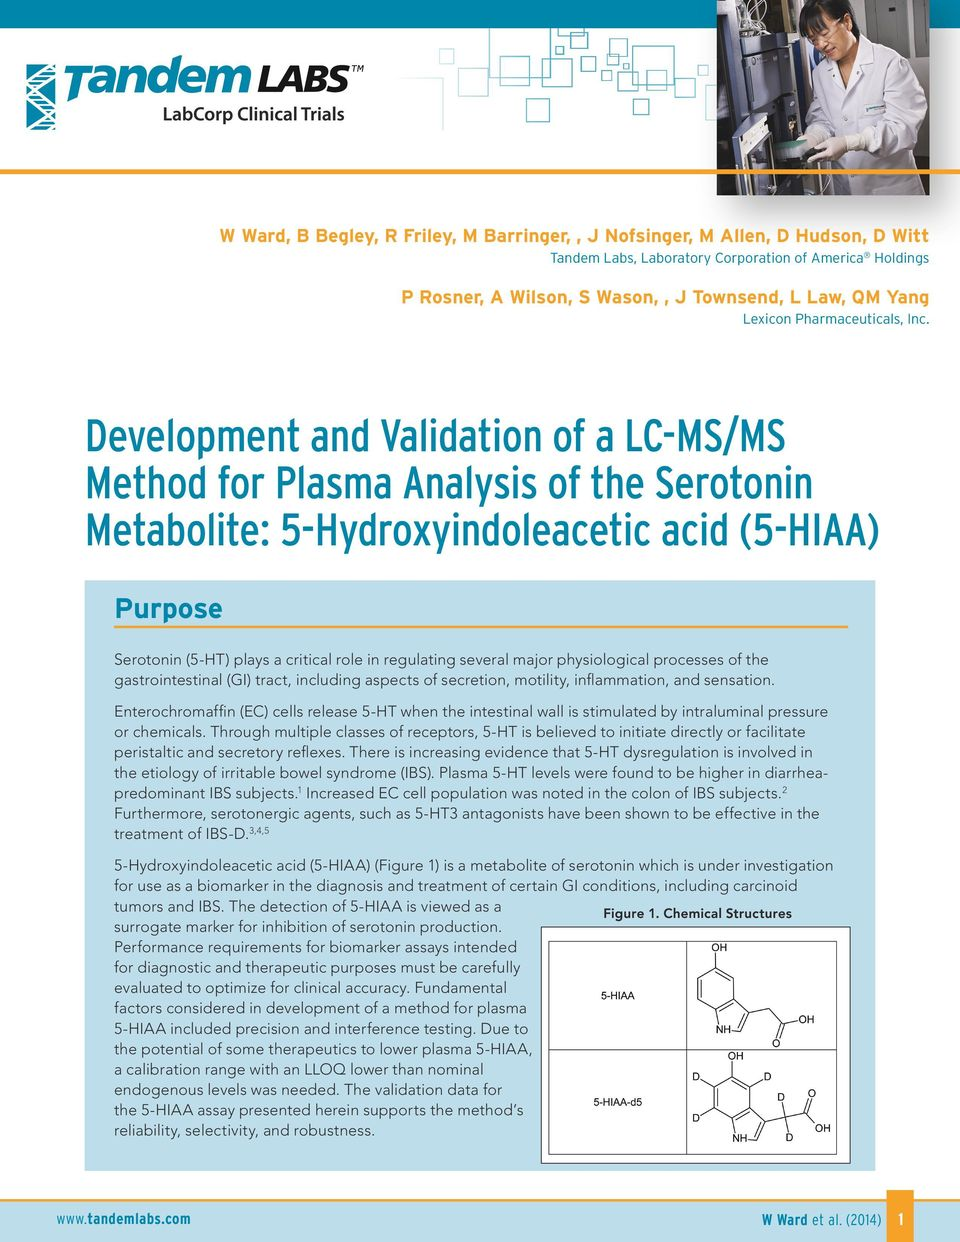 Development and Validation of a LC-MS/MS Method for Plasma